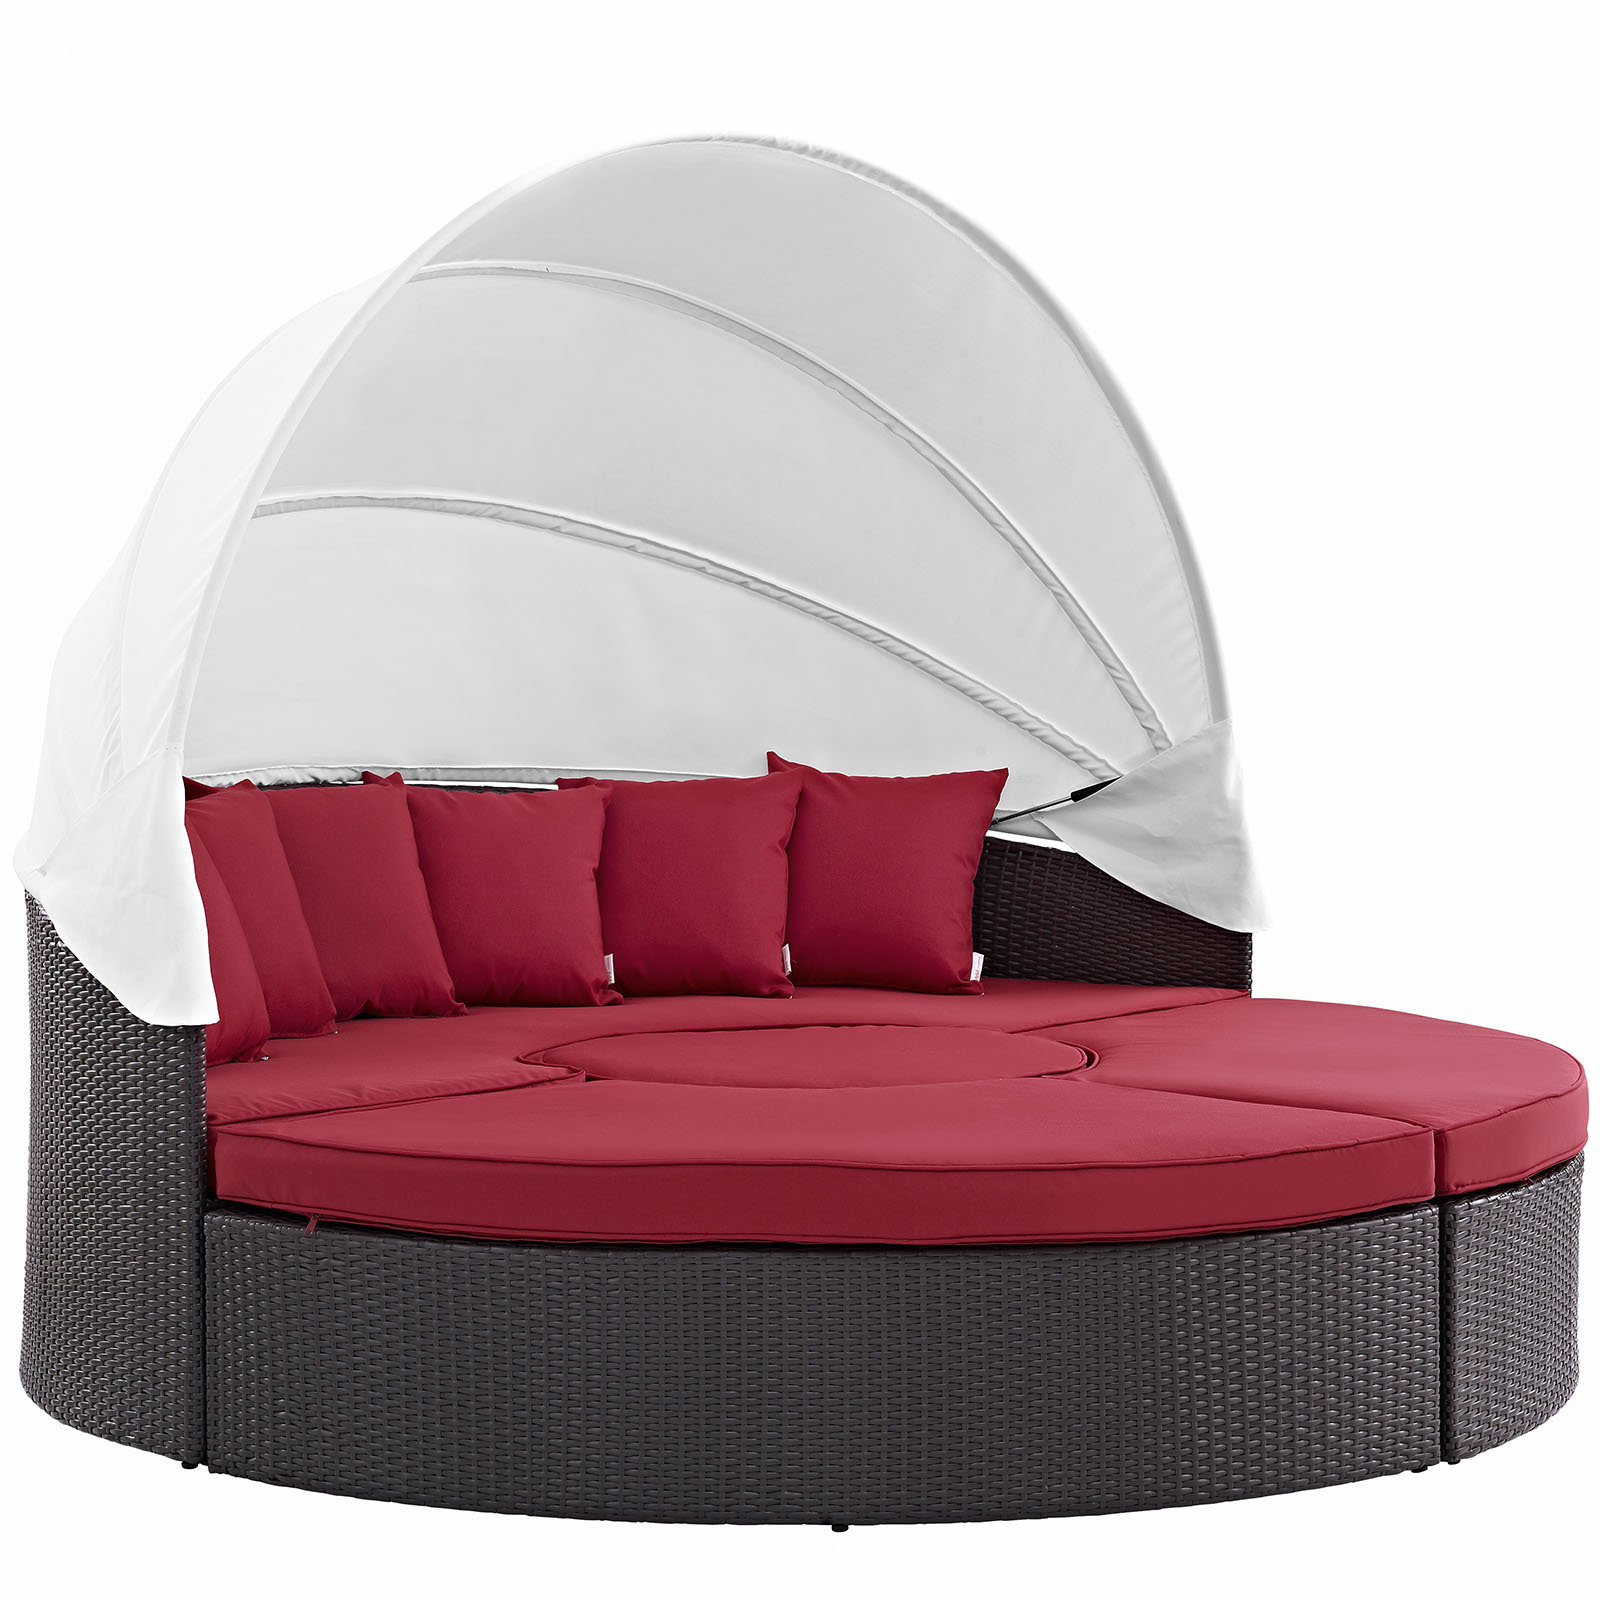 Modern Contemporary Urban Design Outdoor Patio Balcony Canopy Umbrella Daybed Sofa, Red, Rattan